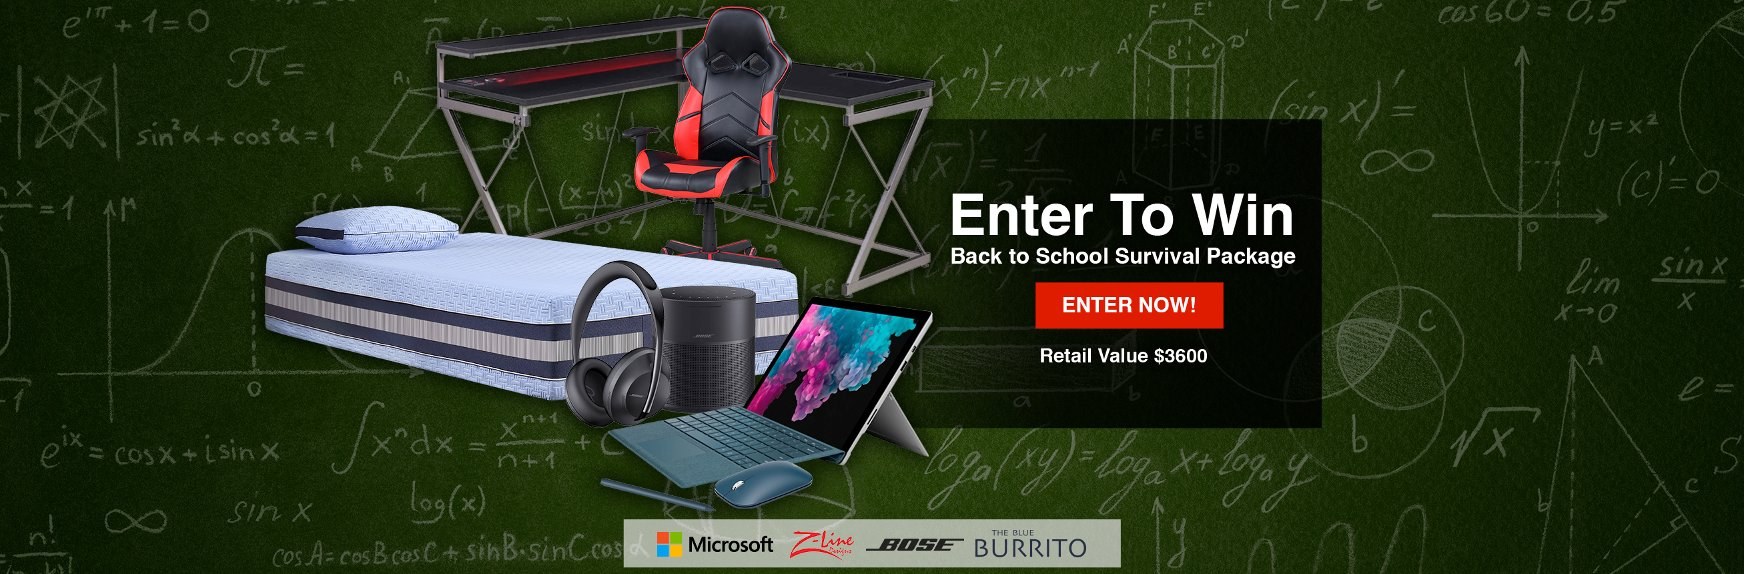 Enter To Win A Back To School Survival Package From RC Willey | Giveaway